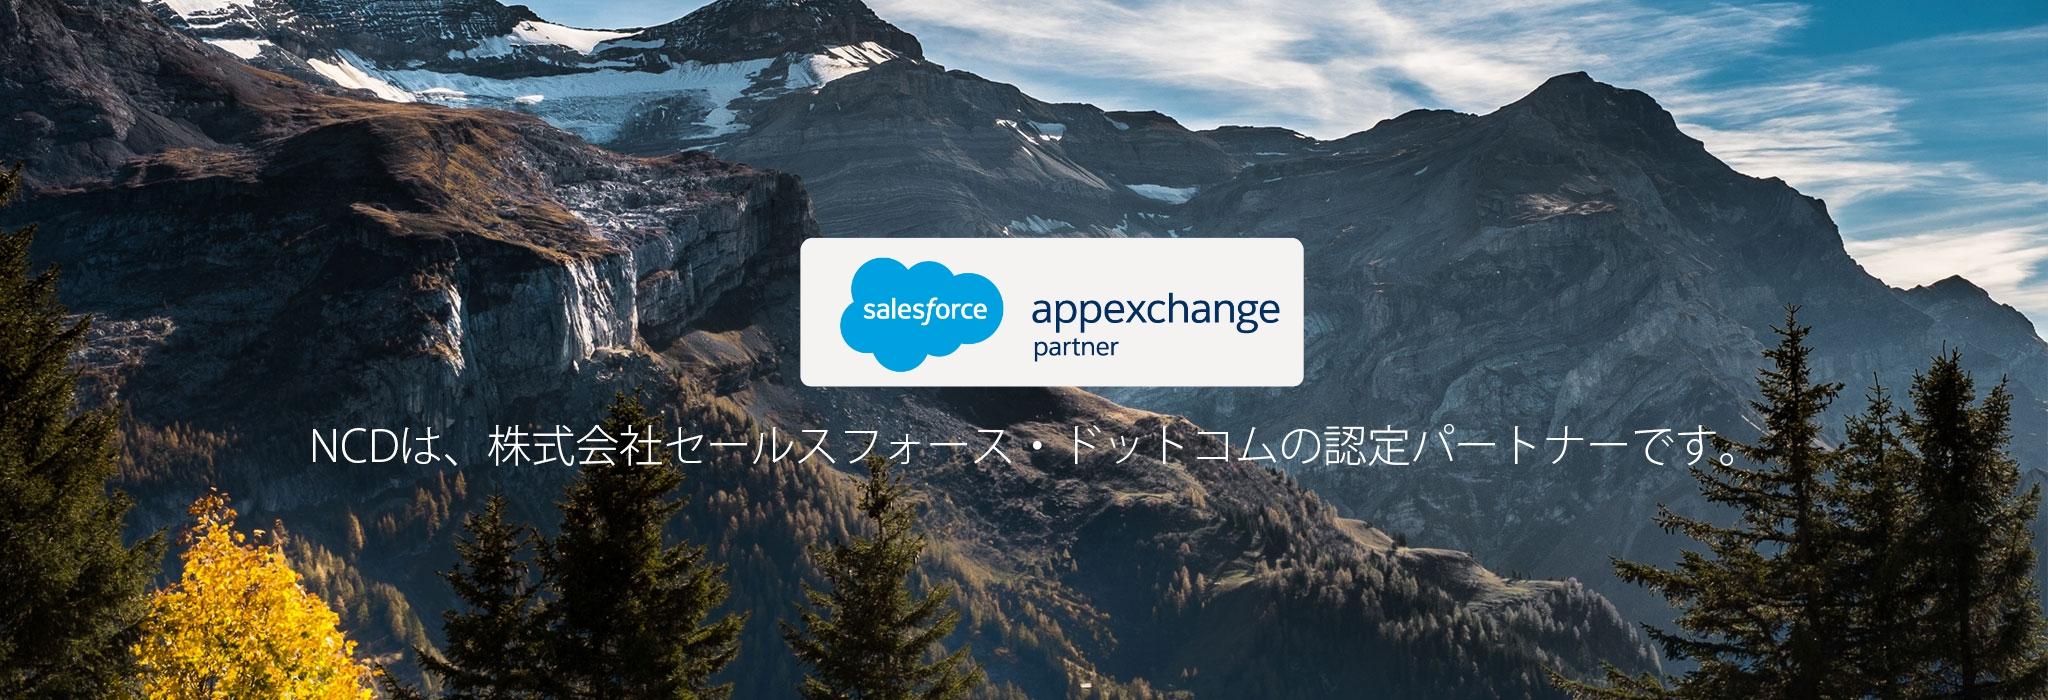 appexchange partner